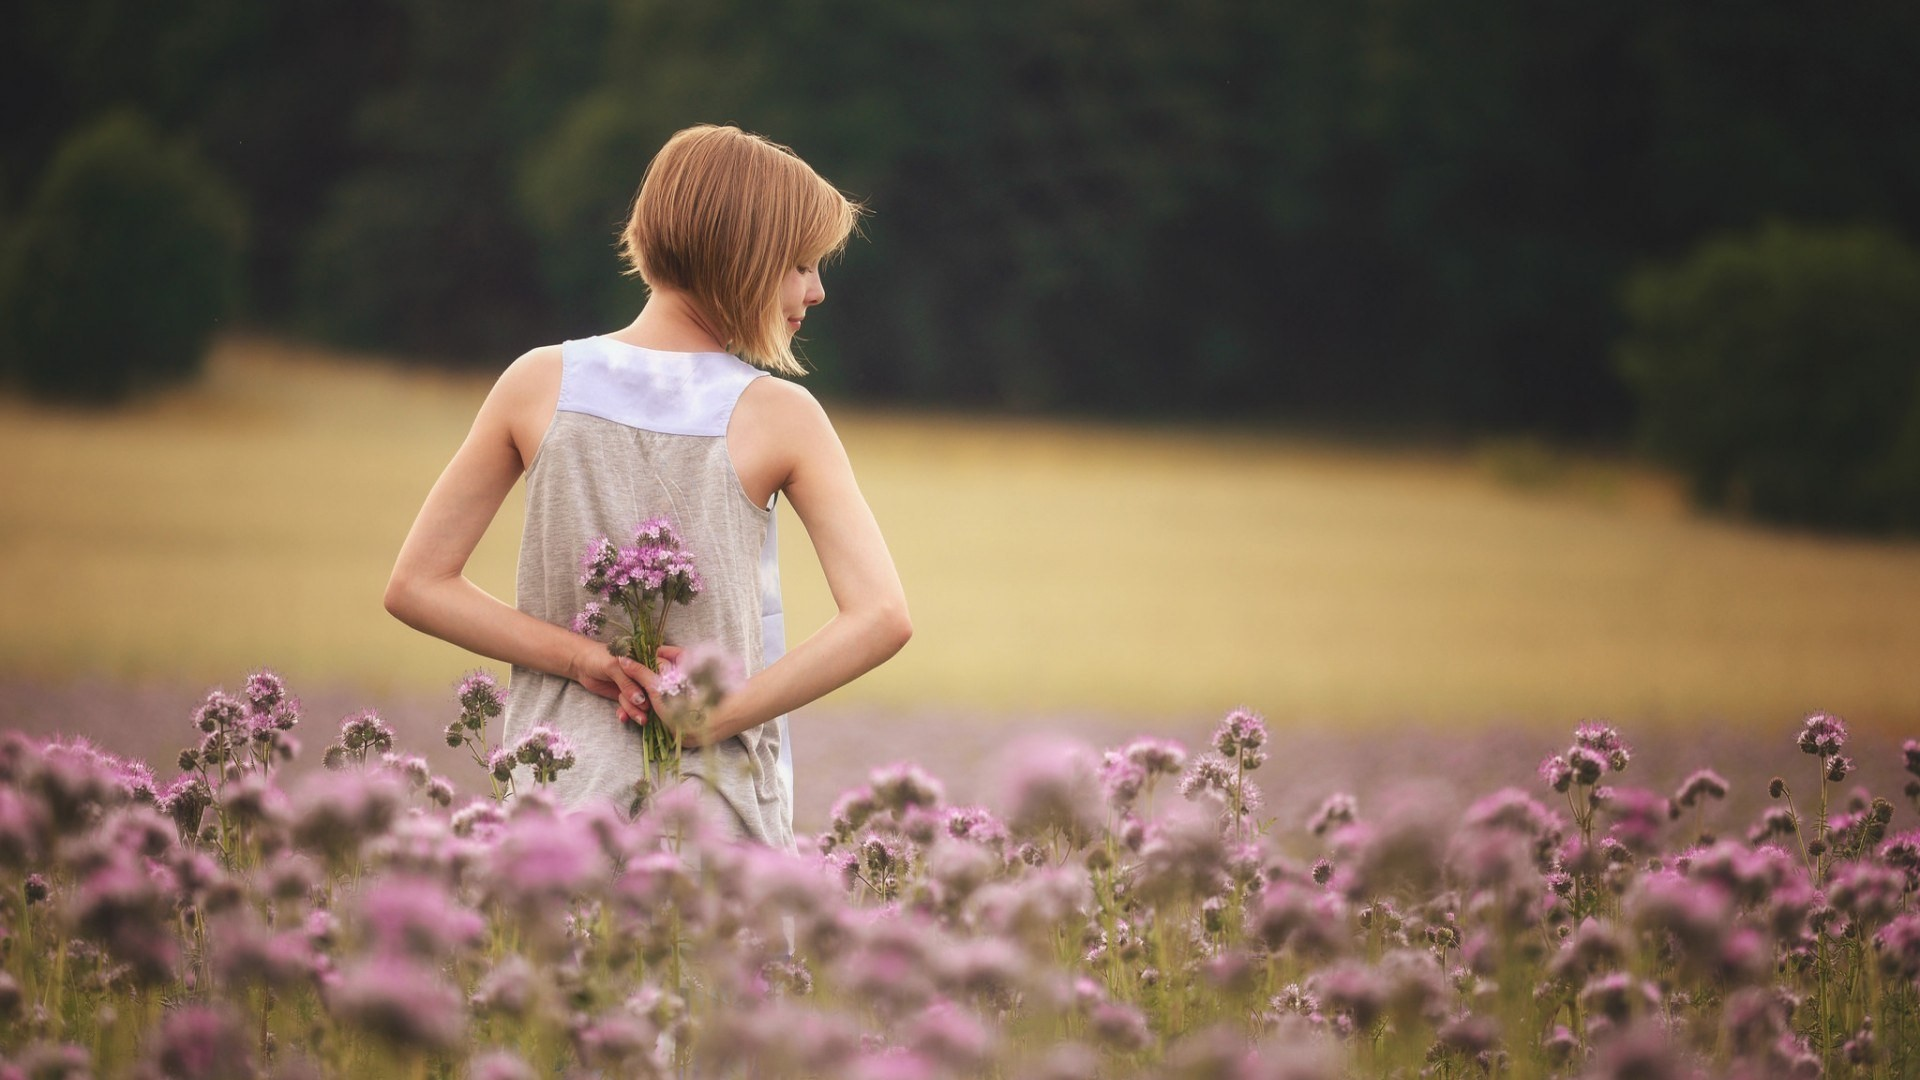 Girl With Flowers Standing In Field Hd Girls 4k Wallpapers Images